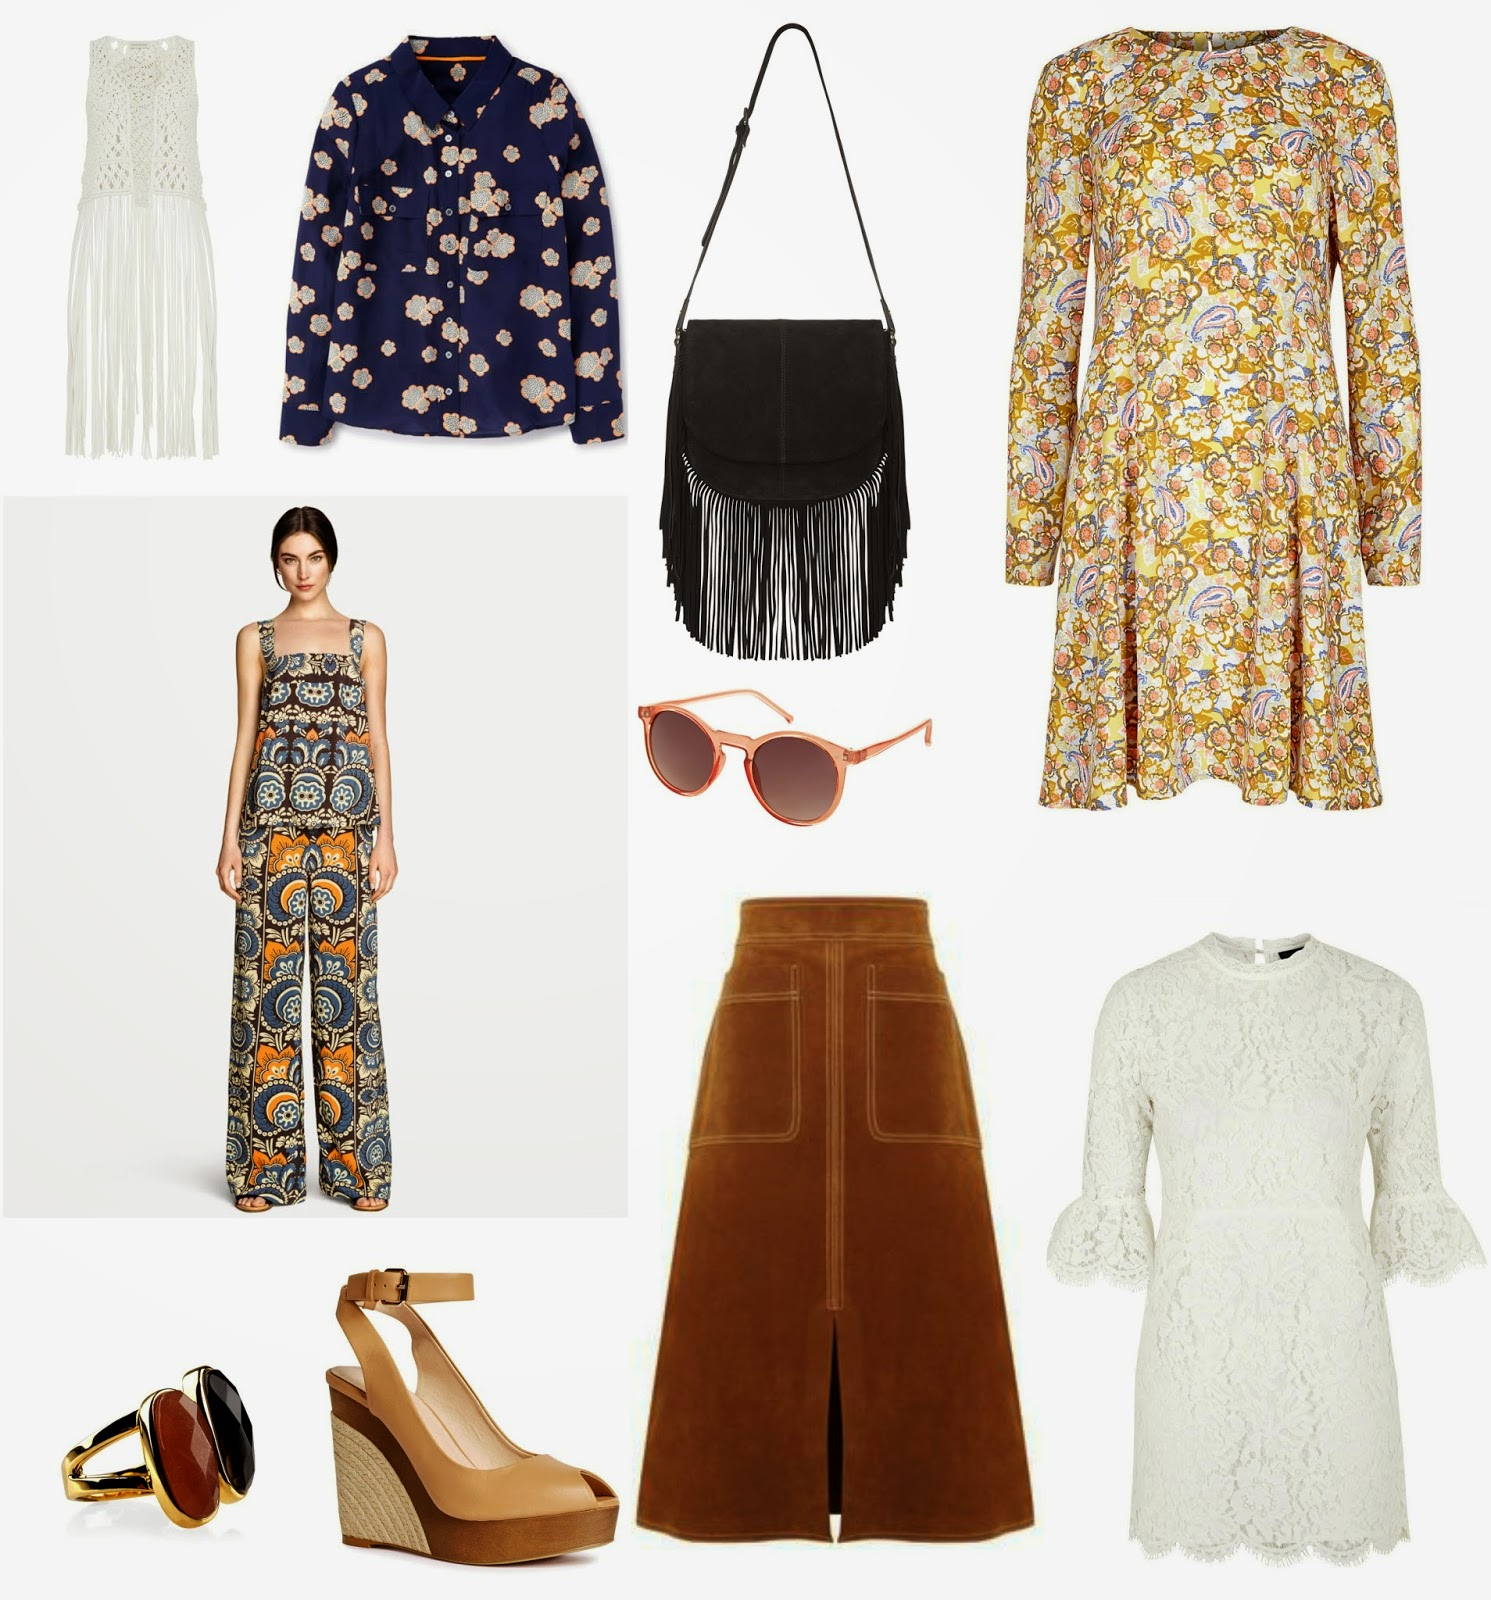 mamasVIB | V. I. BUYS: Mad Men returns and is bang on trend with this seasons 1970's vibe | mad men | 1970 | fashions | retro fashion | 1970 fashion | mad men fashion | style | joan | betty | megan | peggy | mad men women | seventies | marks and spencer side skirt |paisley | a-line skirts | 70's fashion | mamasVIb | stylist | makeup | charlotte tilbury | batiste paisley | no 7 | coachella | H&m | wide trousers | boden | flour shirt | wedges | next | retro shoes | retro fashion | mad men at banana republic | ladie of and men | janie bryant | mamas VIb | fashion tips | stylising | new trends | tom ford | chloe | 1970 | perfume | don draper |